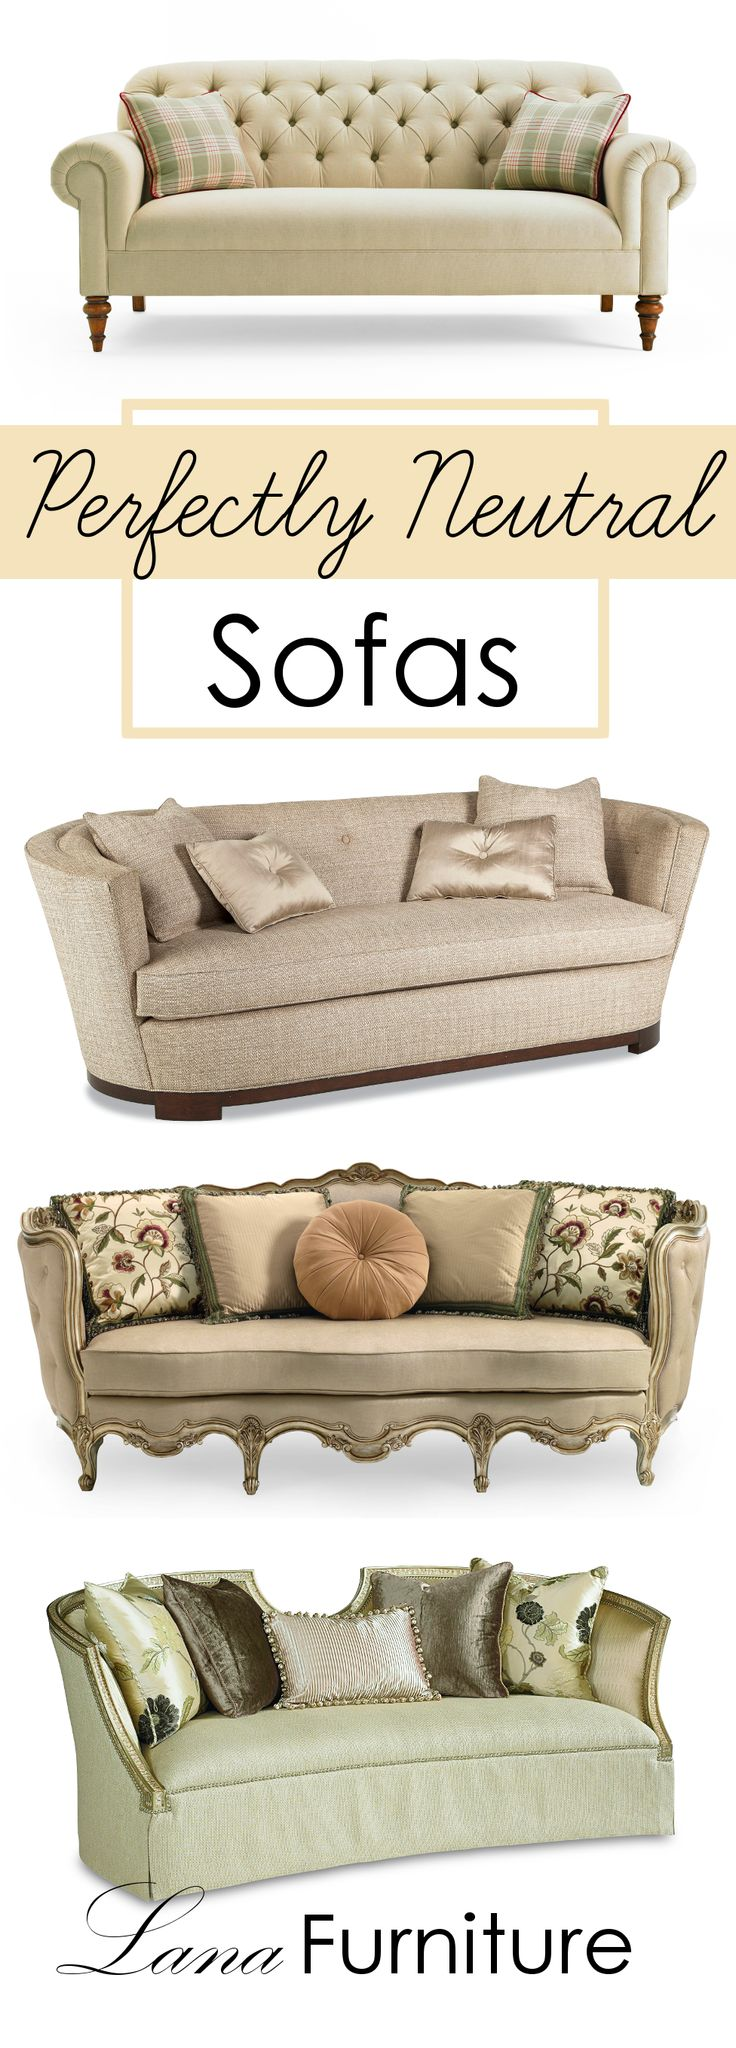 Neutral Sofas Are All The Rage   And For Good Reason   Theyu0027re Easy